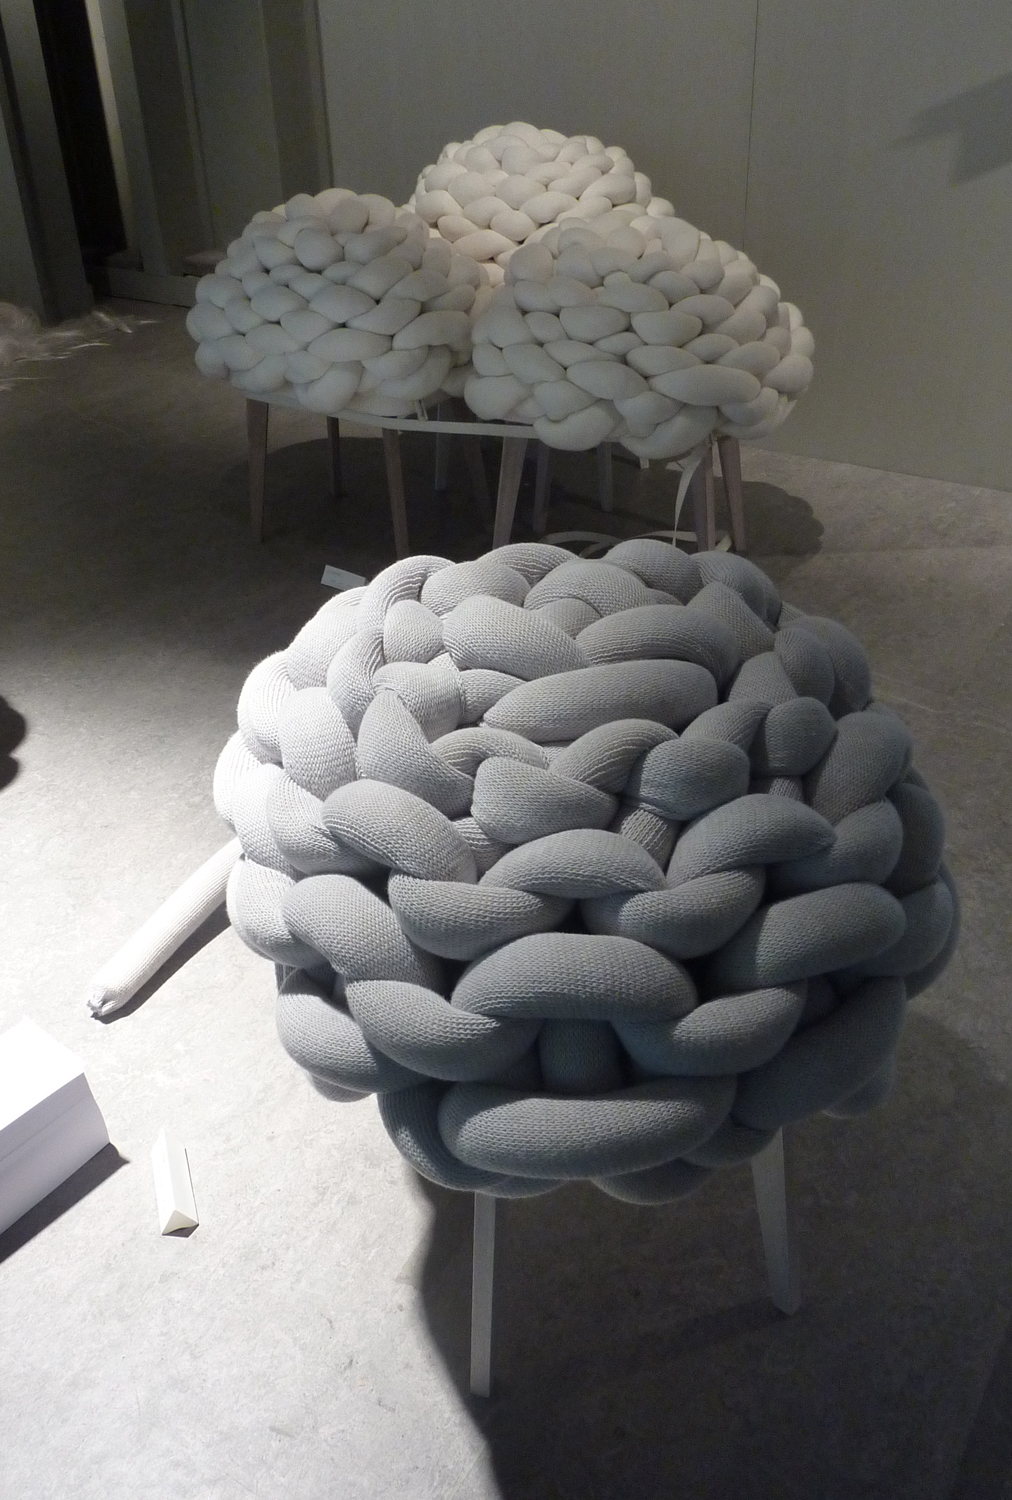 Jung You Choi Graduated From The Design Department U0027 Man And Well Beingu0027  She Designed The Cloud Stool, A Stool Like A Cloud, Soft, Fluffy And Airy.